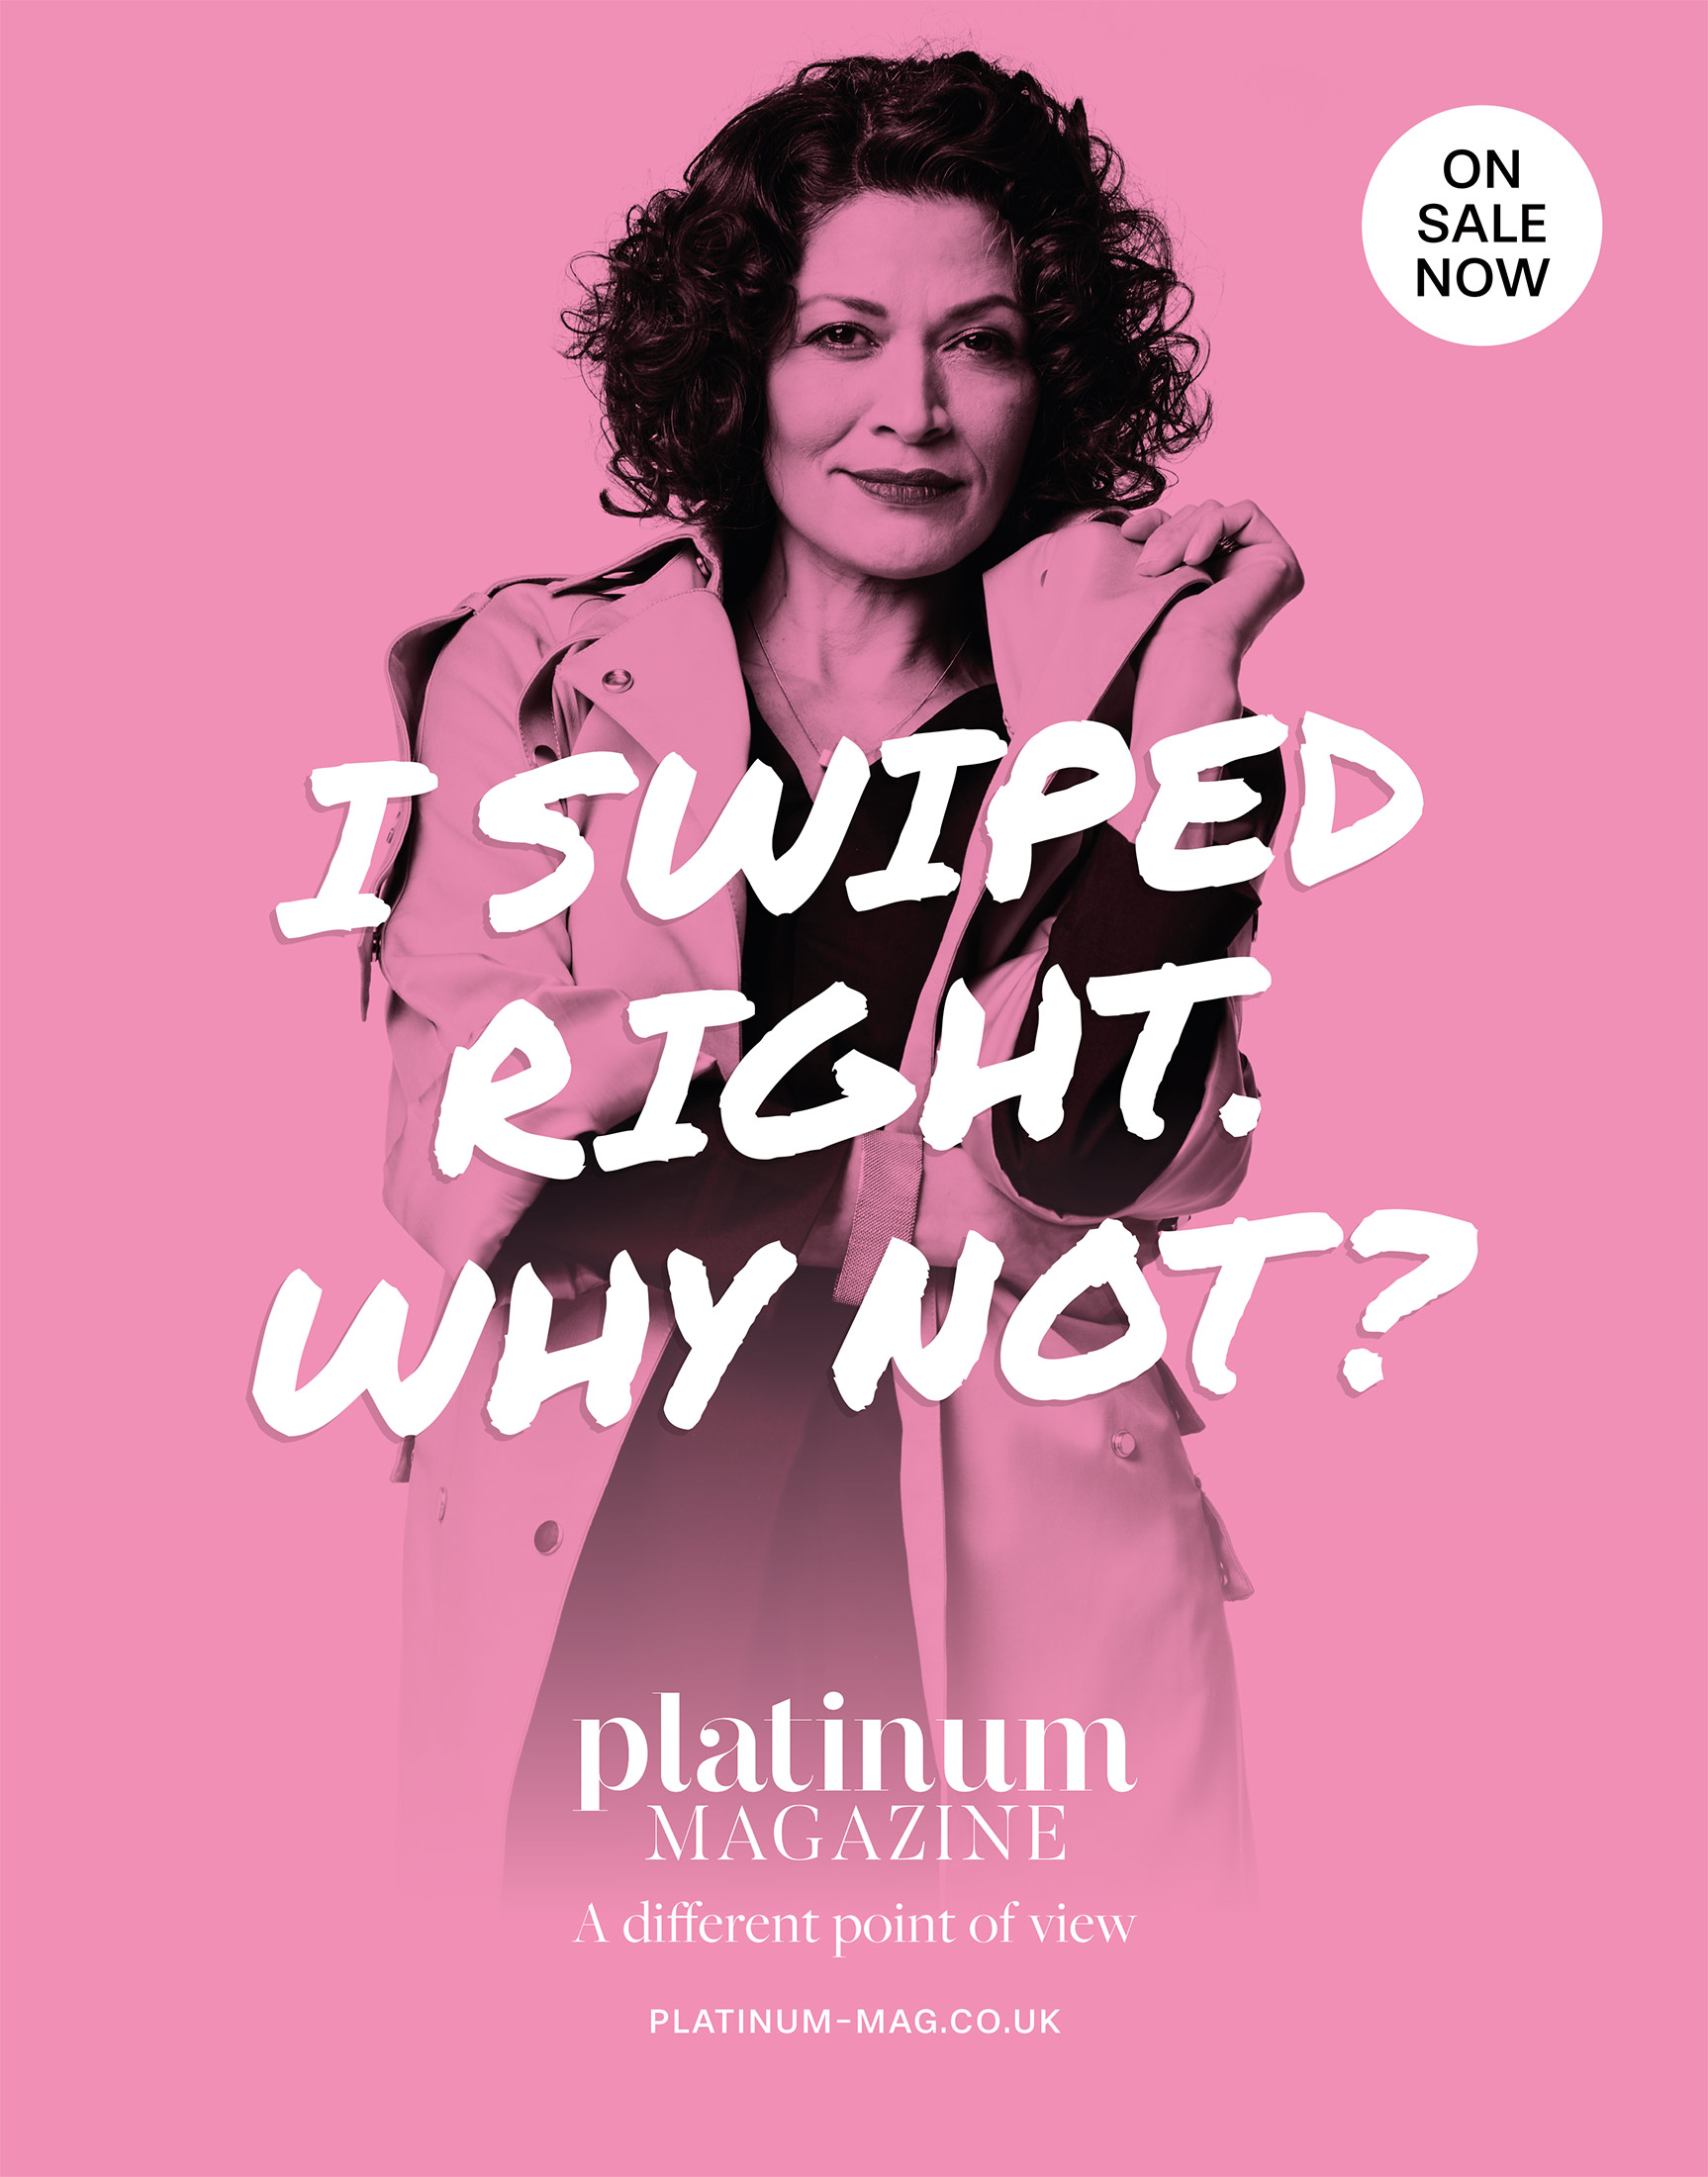 Platinum advert – I swiped right. Why not?